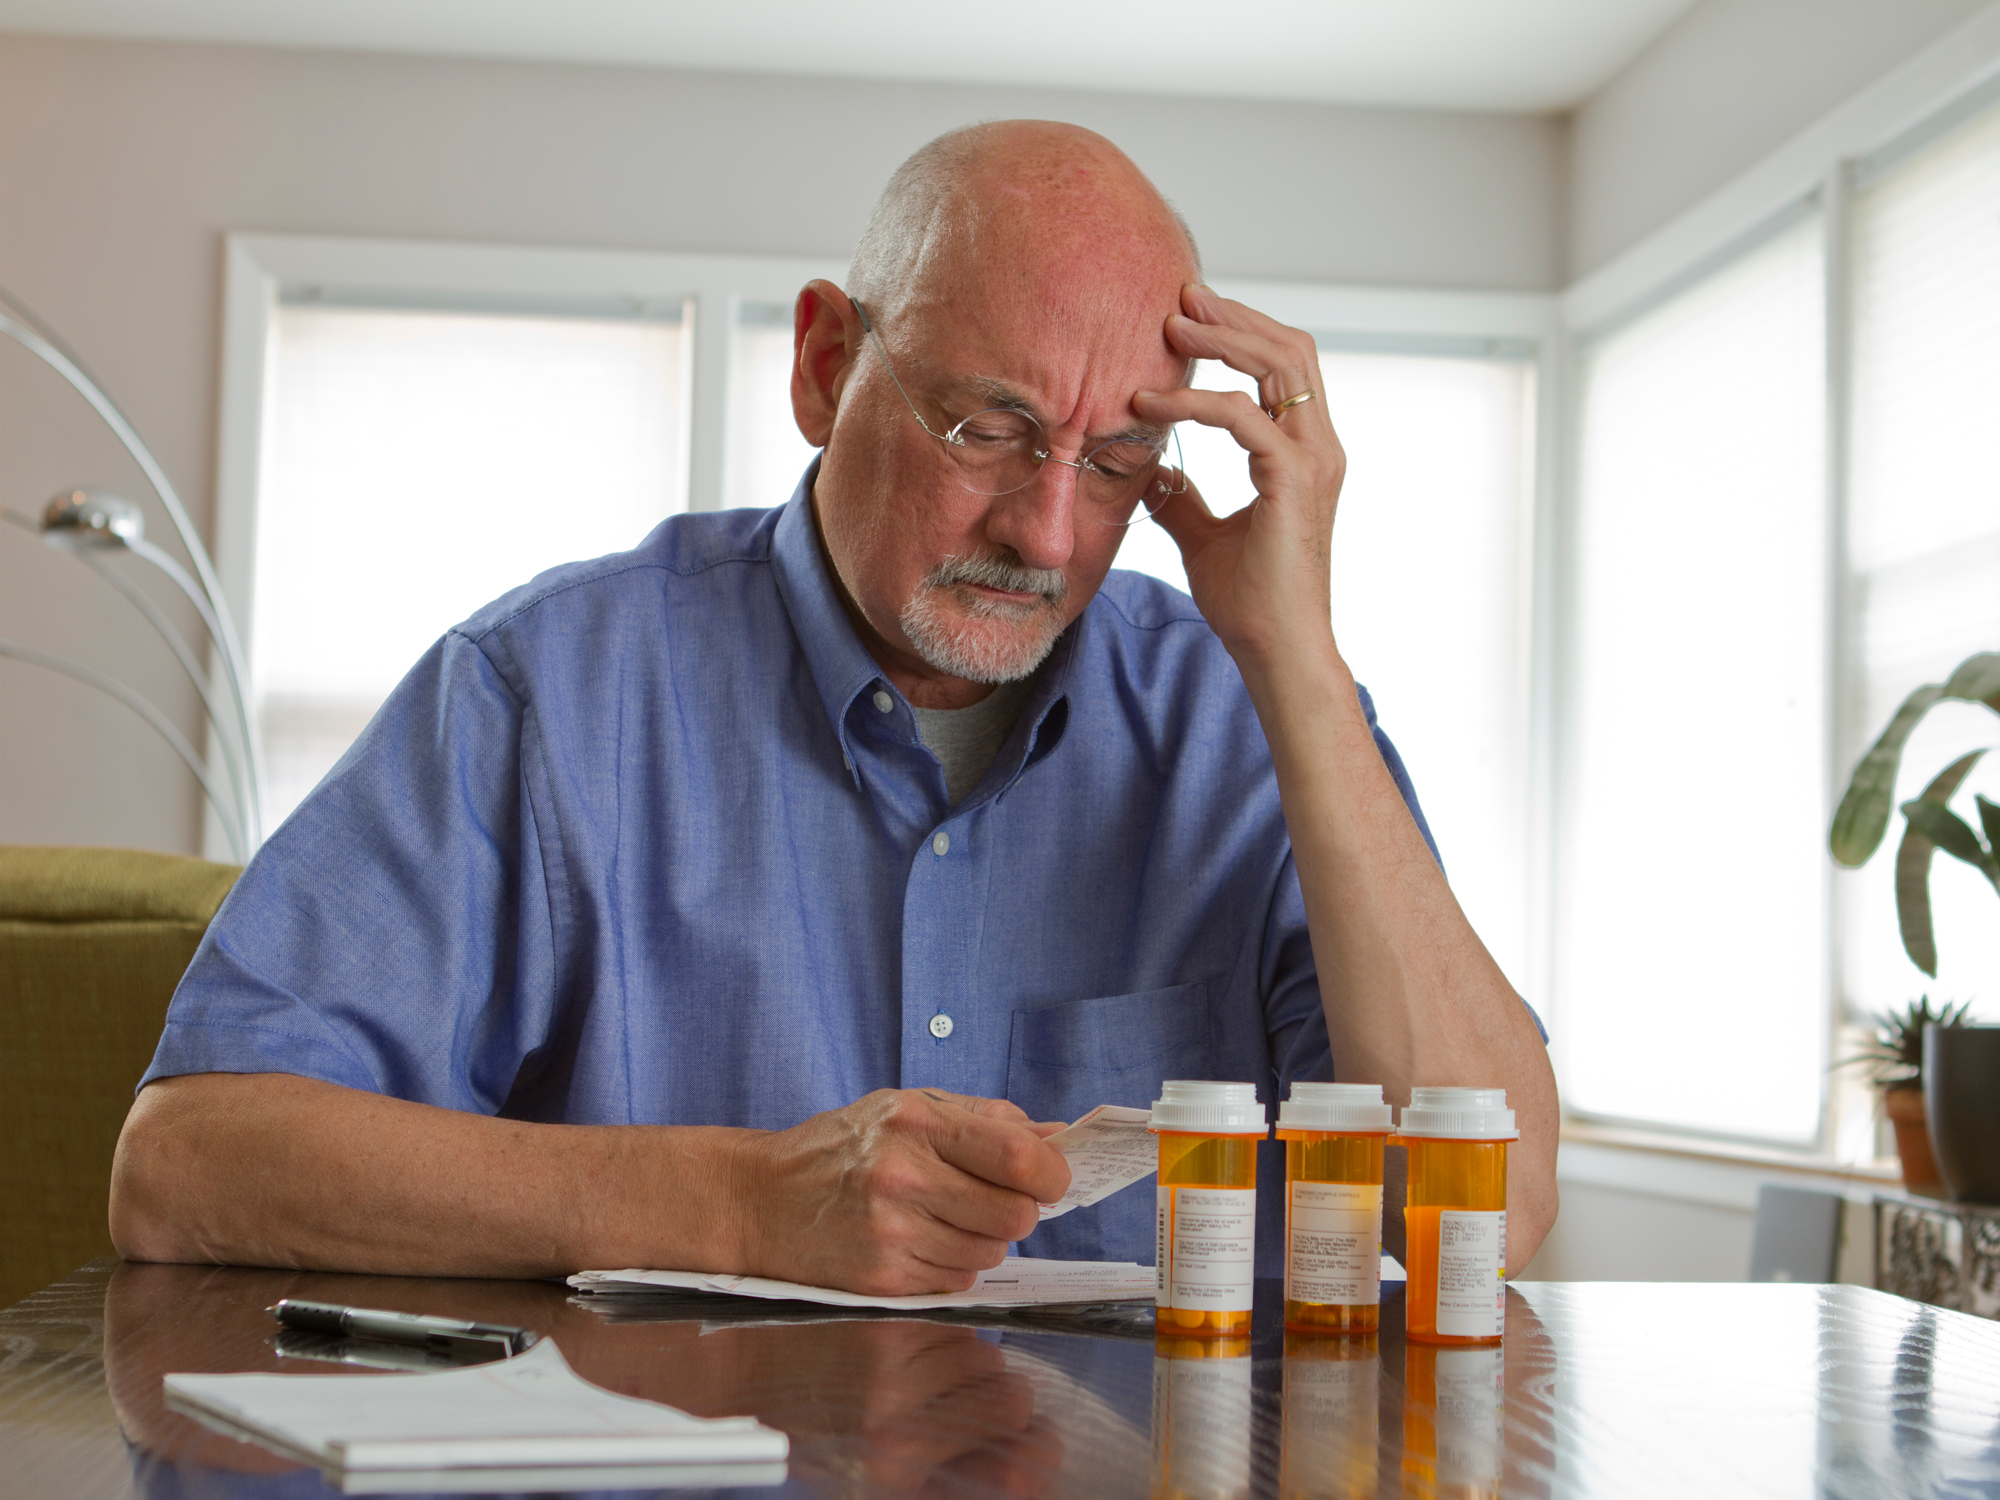 7 better-than-statin ways to lower heart disease risk